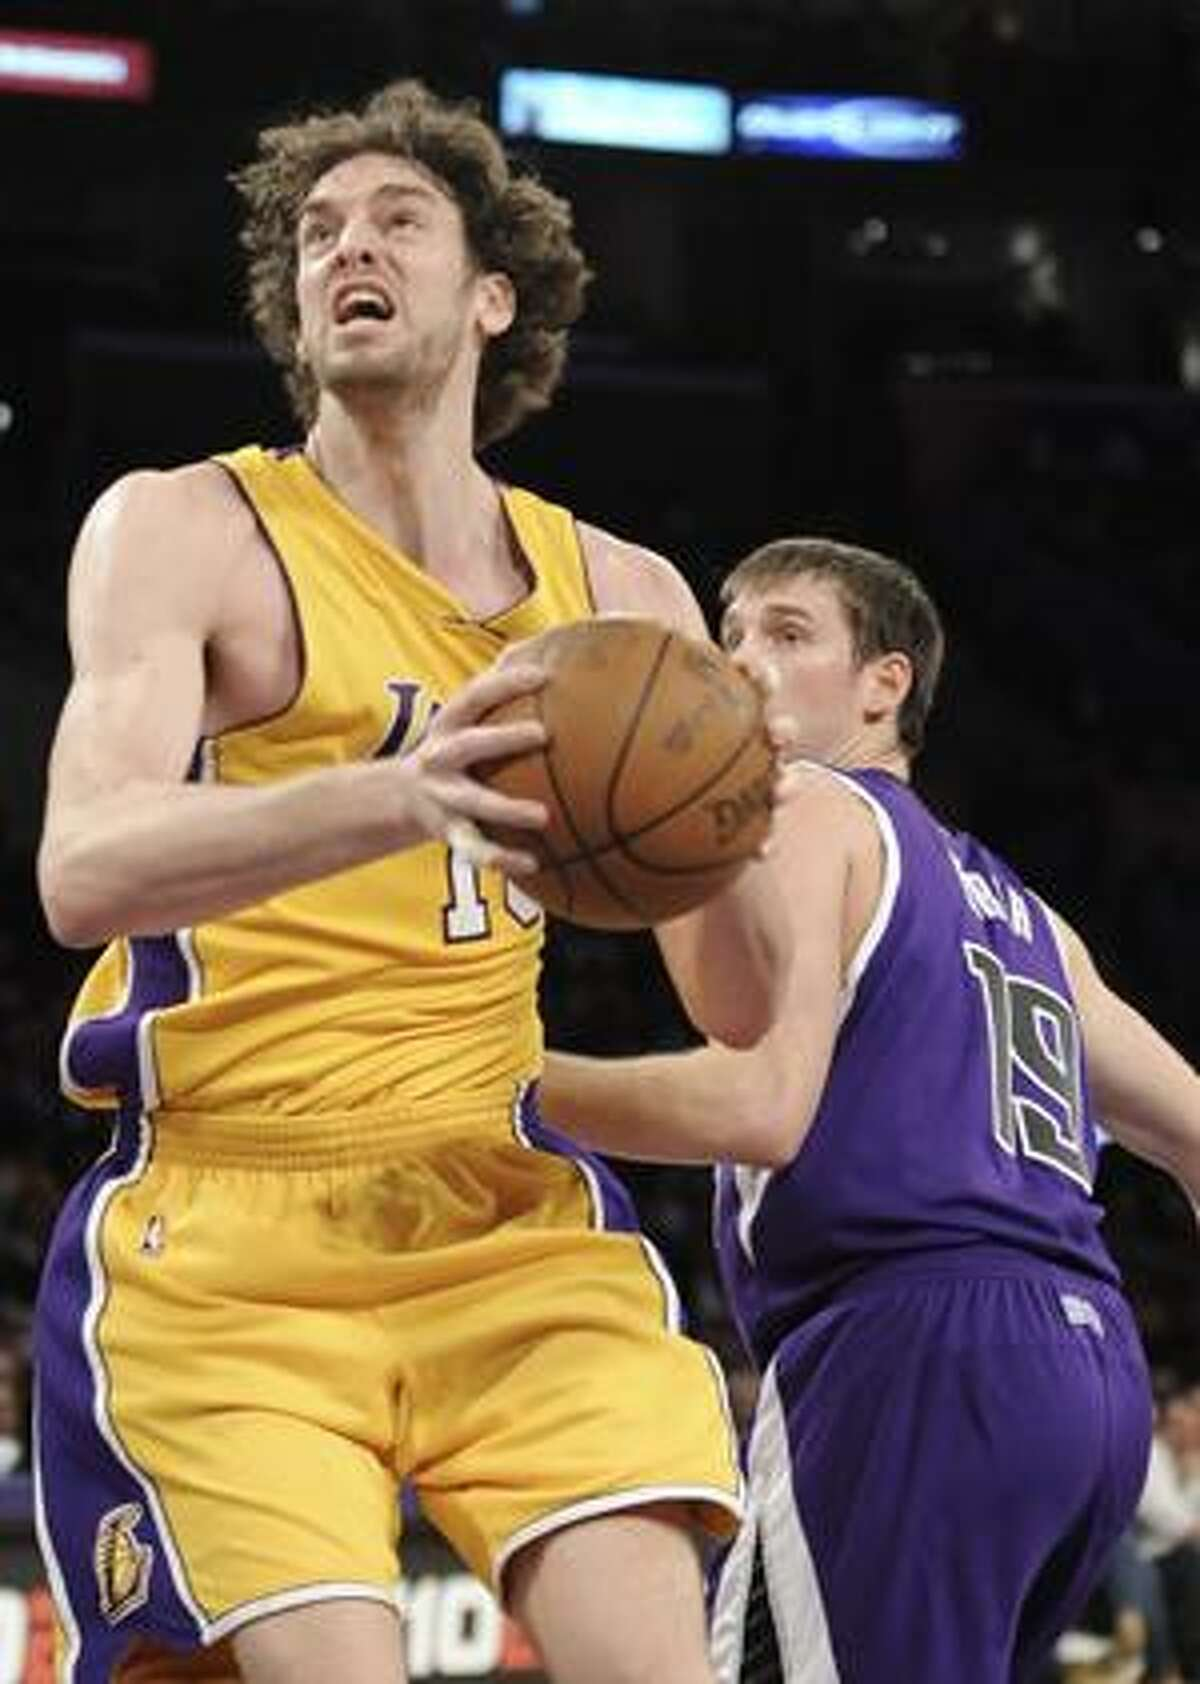 AP Los Angeles Lakers forward Pau Gasol, left, gets by Sacramento Kings guard Beno Udrih (19) for a basket in the first half of Tuesday's game in Los Angeles.